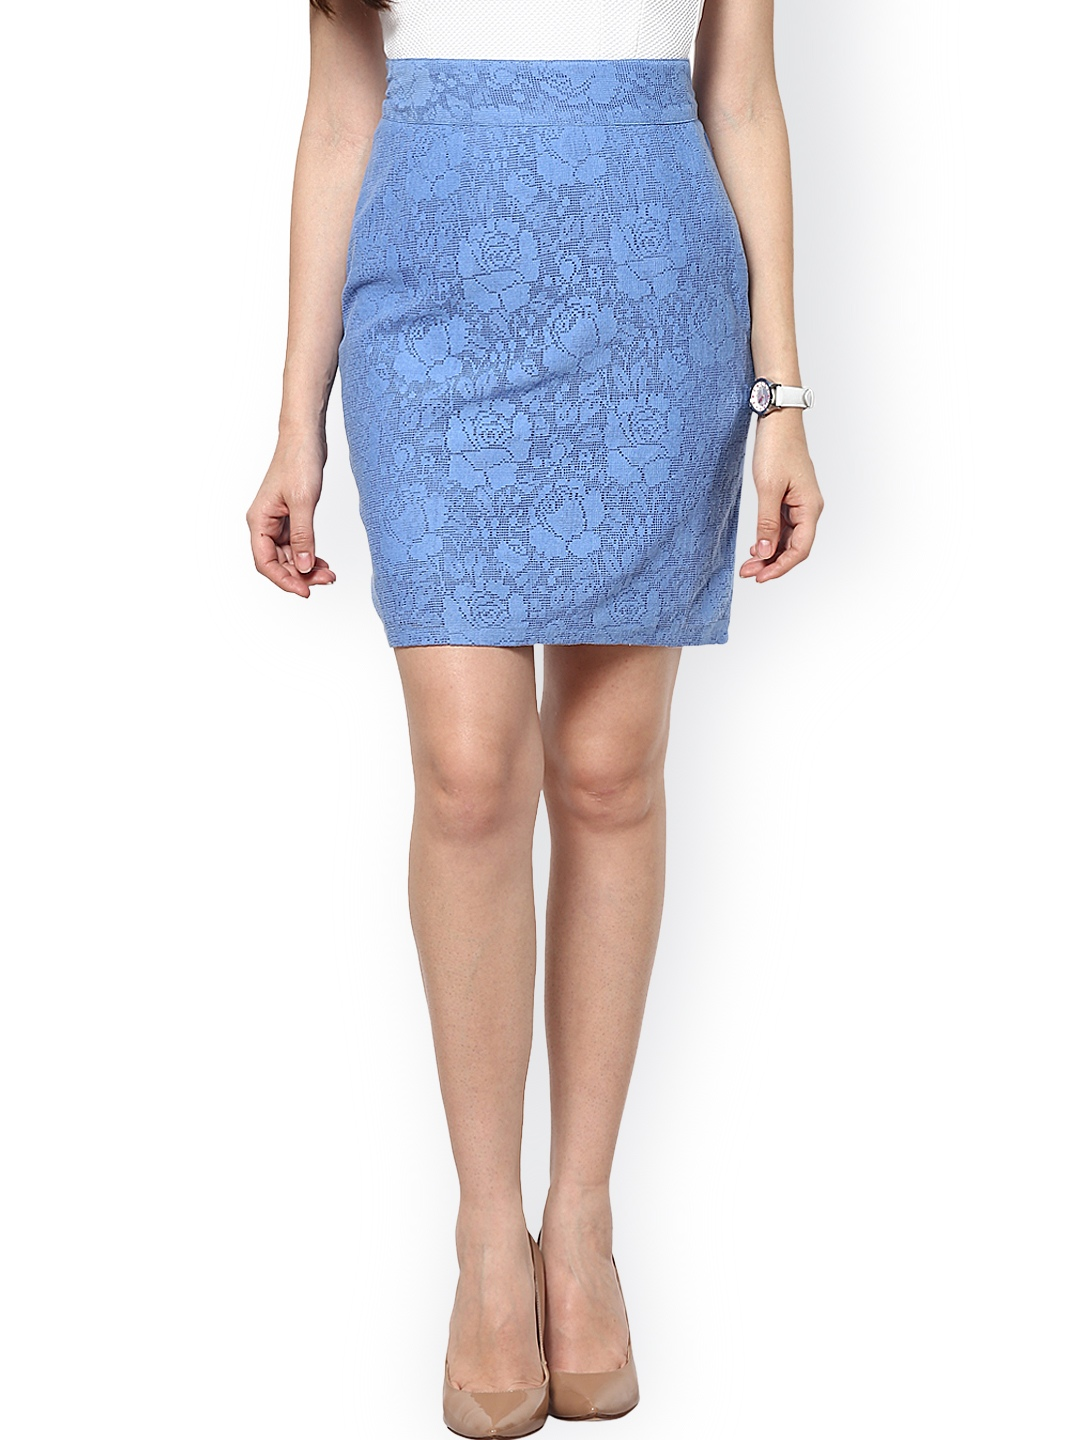 This sultry pencil skirt is shaped by a lovely eyelash lace overlay (atop a matching liner) and is decorated with stripes of light blue and white from the top of the high waist, down to the figure-flaunting, slightly scalloped, knee-length hem/5(2).